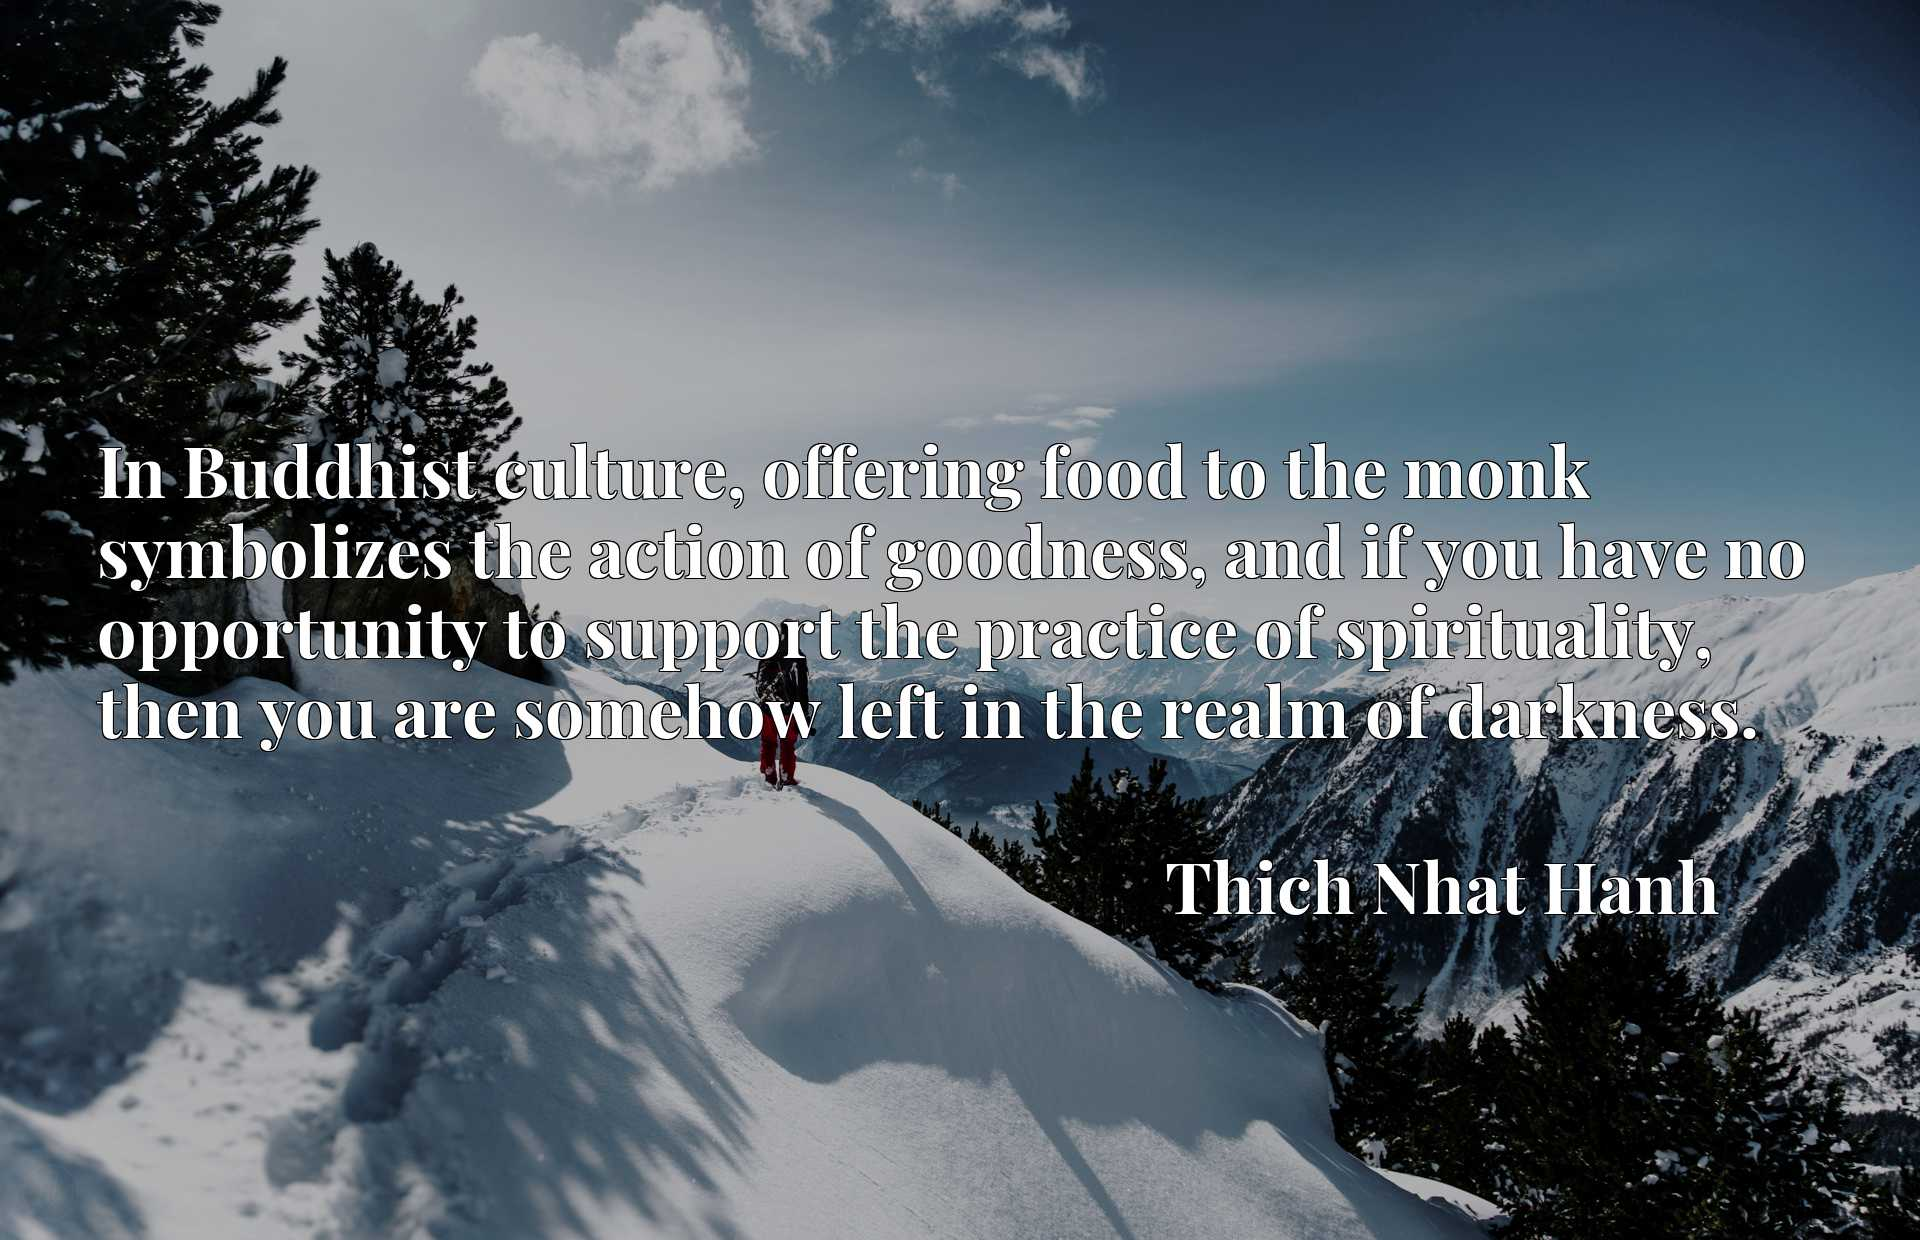 In Buddhist culture, offering food to the monk symbolizes the action of goodness, and if you have no opportunity to support the practice of spirituality, then you are somehow left in the realm of darkness.